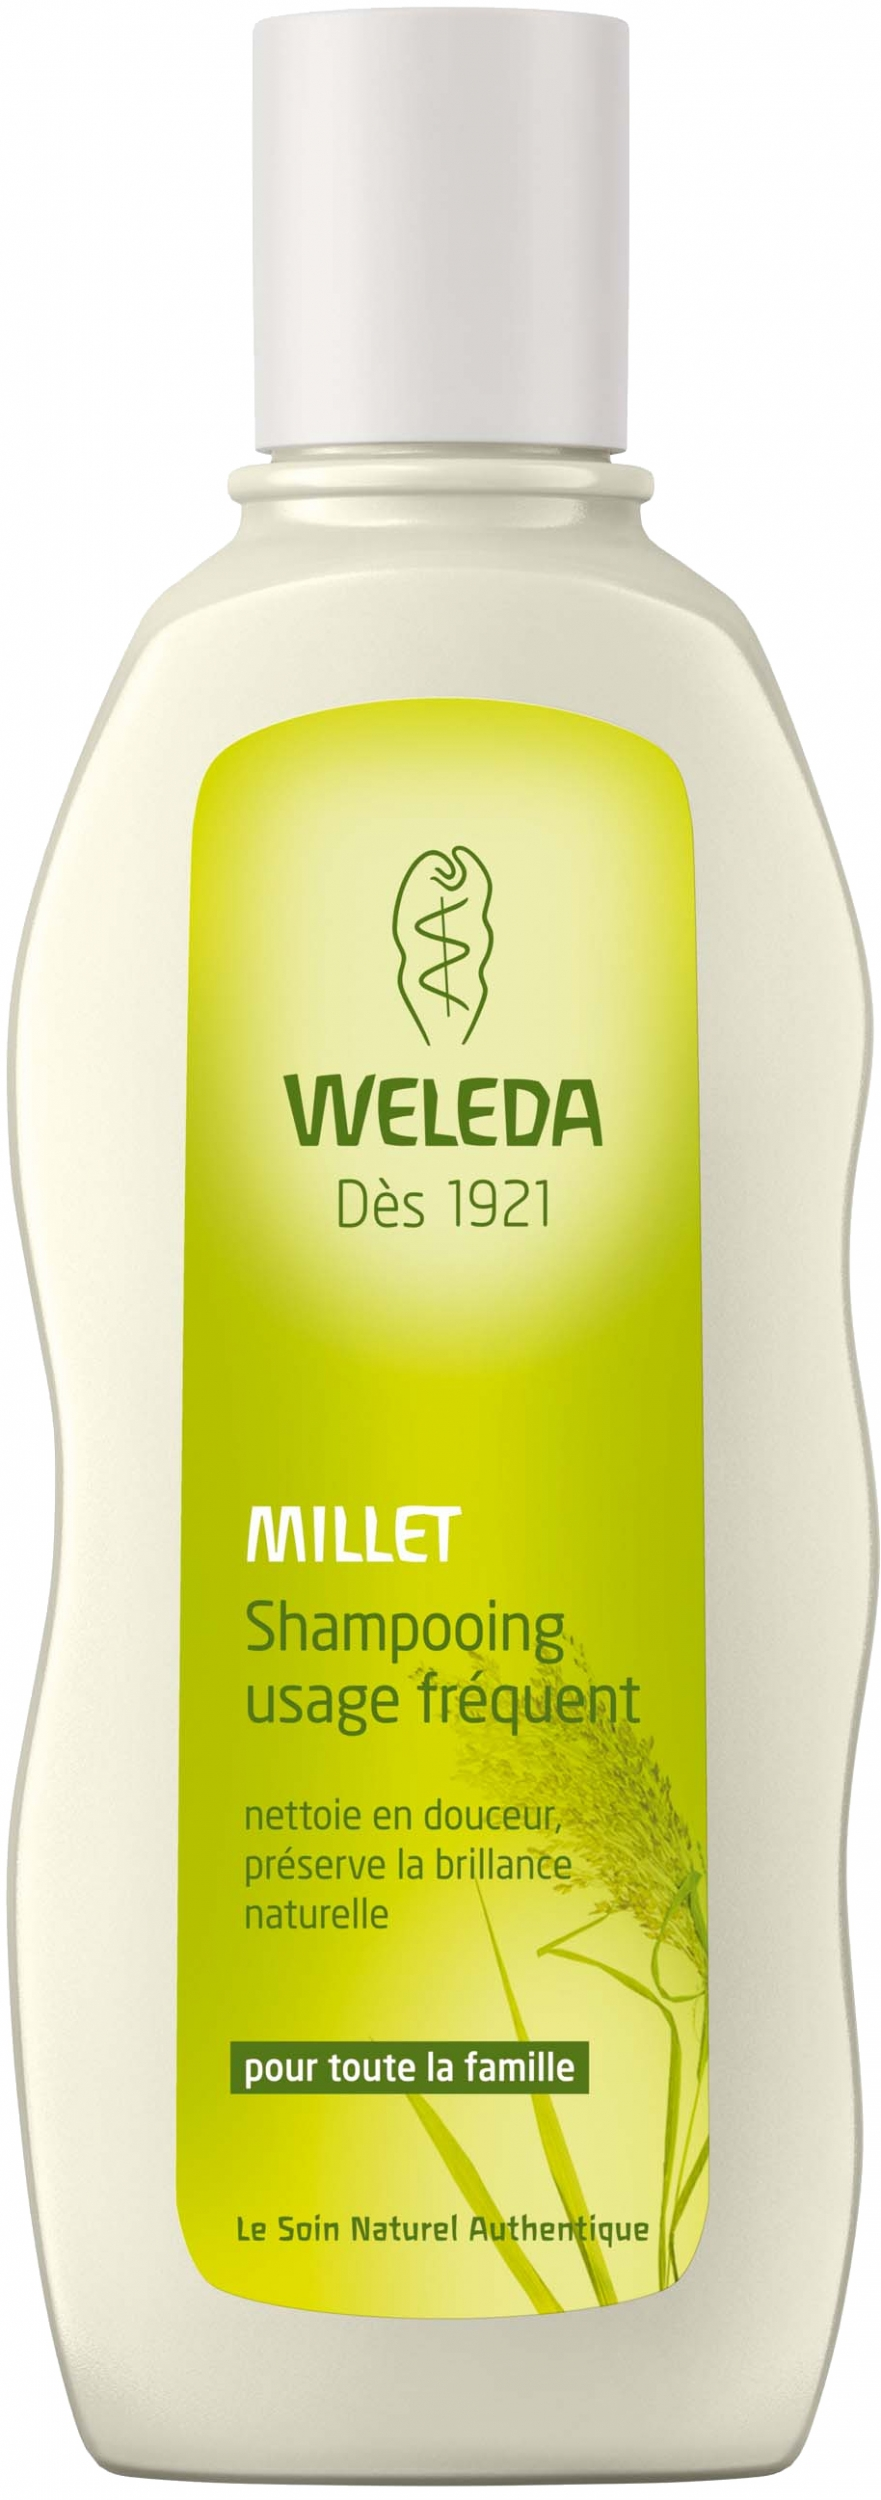 Doux Good - Weleda - Shampoing au millet pour usage frequent